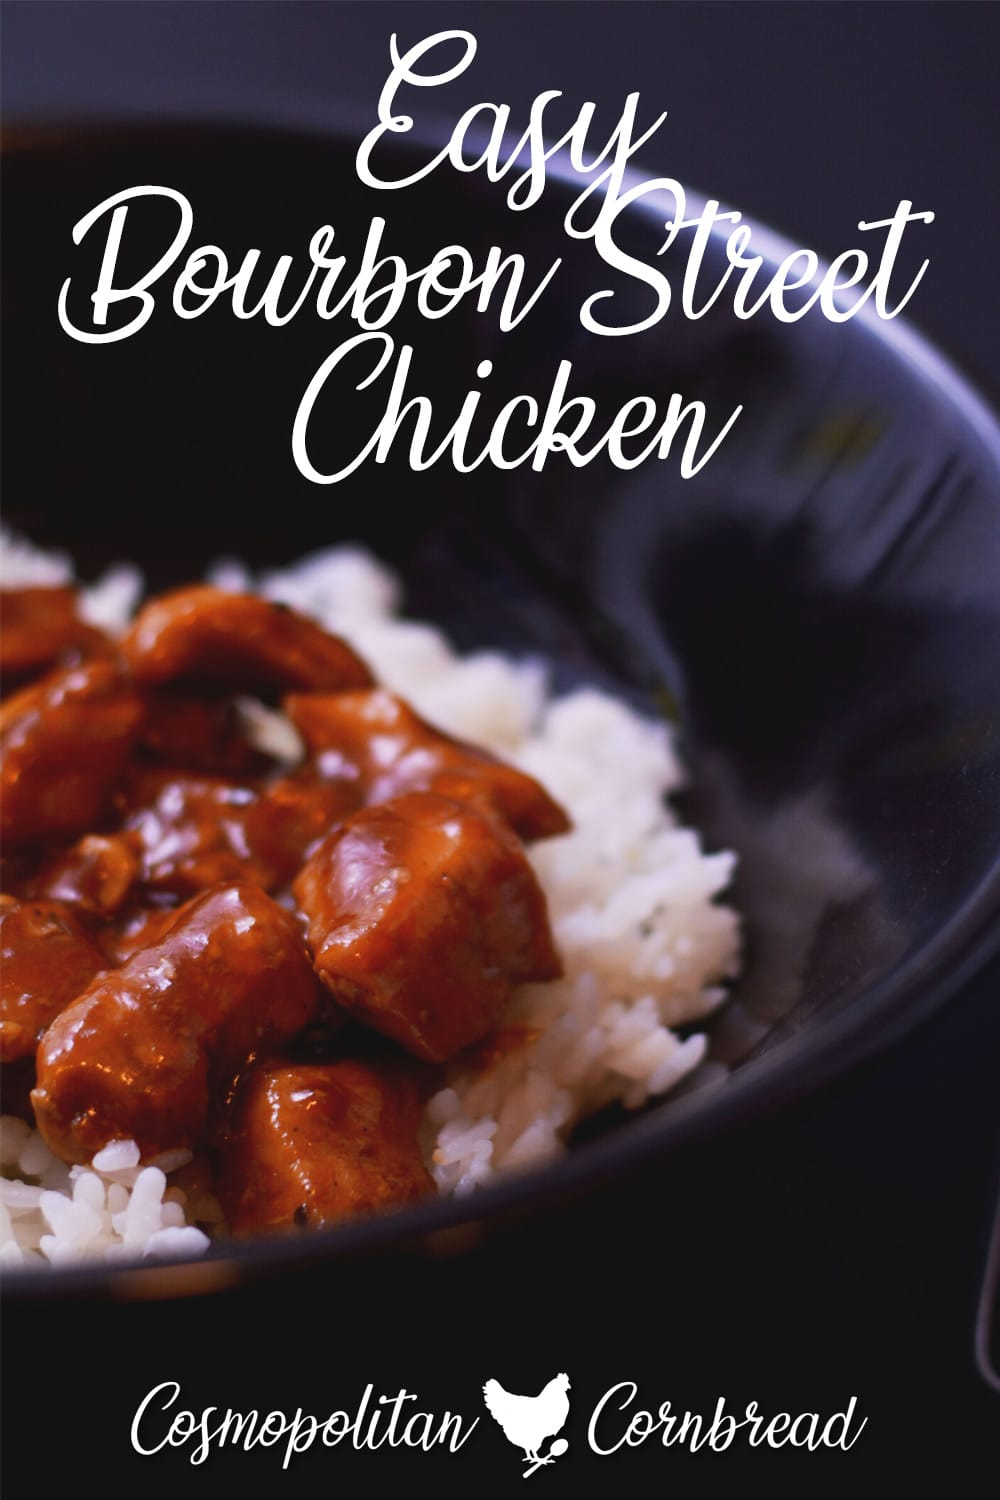 This wonderfully rich dish is a great busy night meal that is quick and full of flavor.